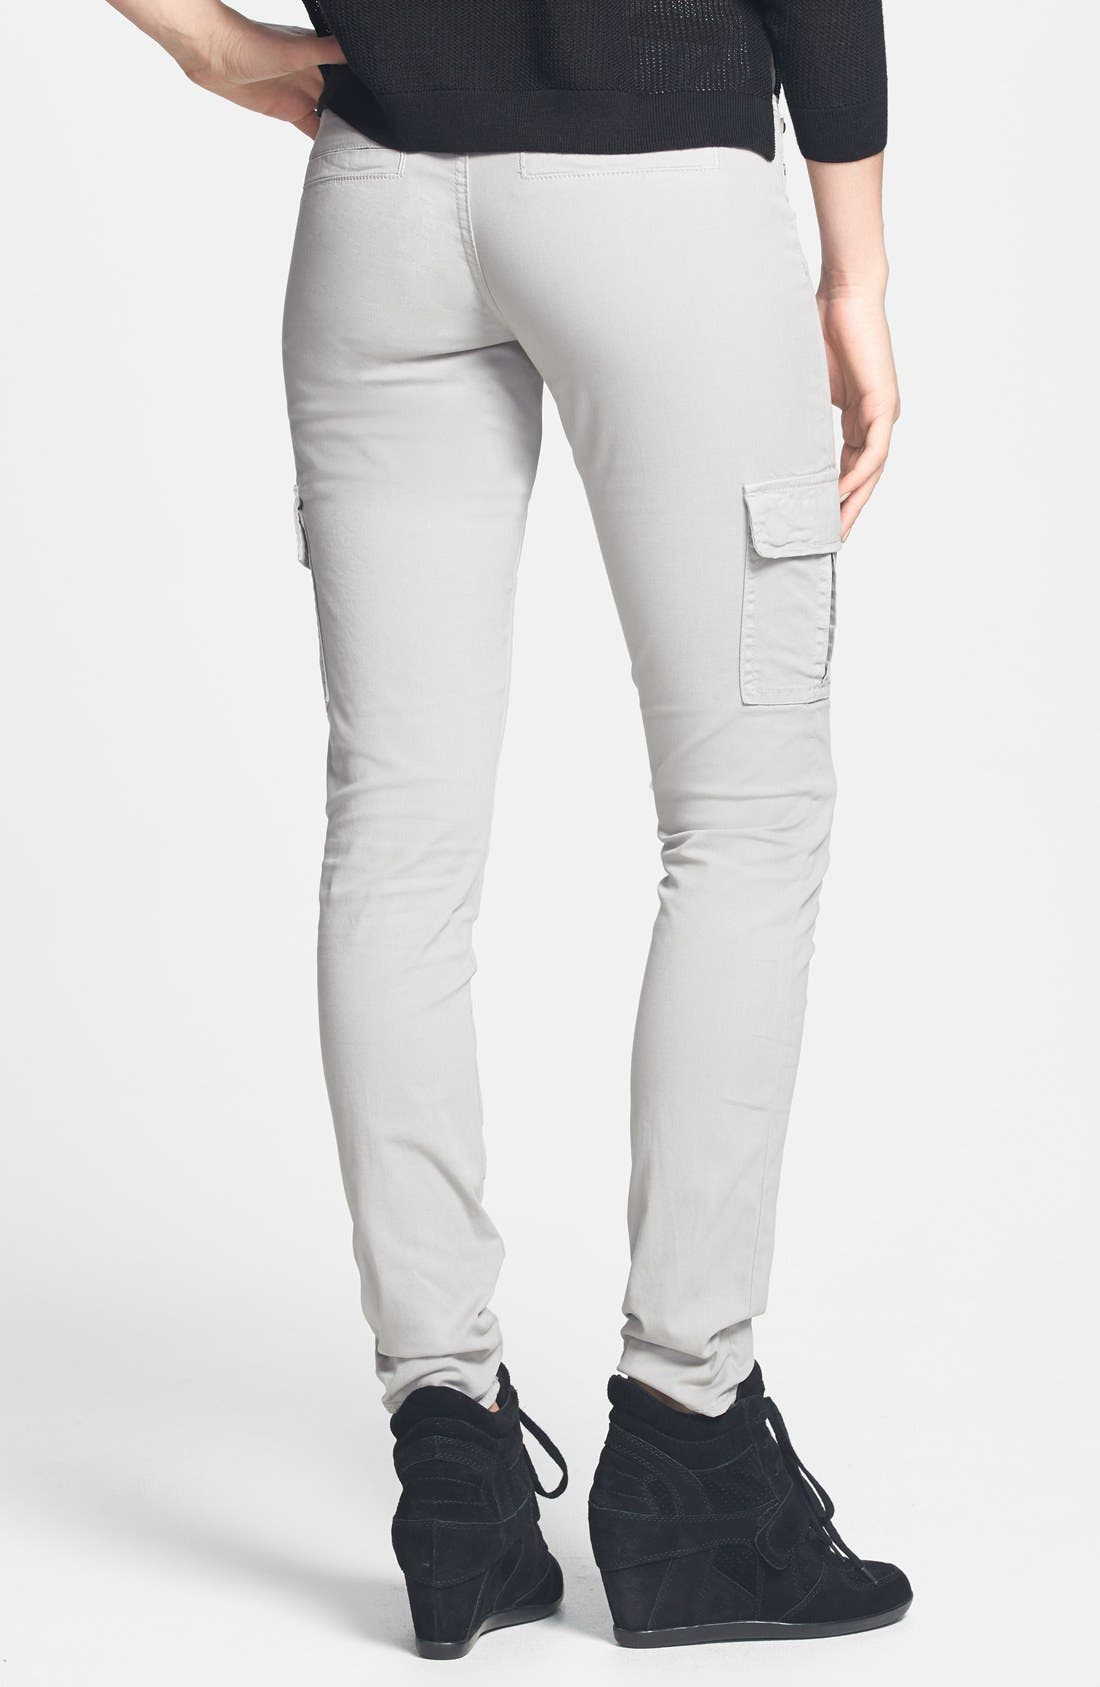 Alternate Image 2  - Articles of Society 'Mya' Cargo Skinny Jeans (Grey) (Juniors) (Online Only)